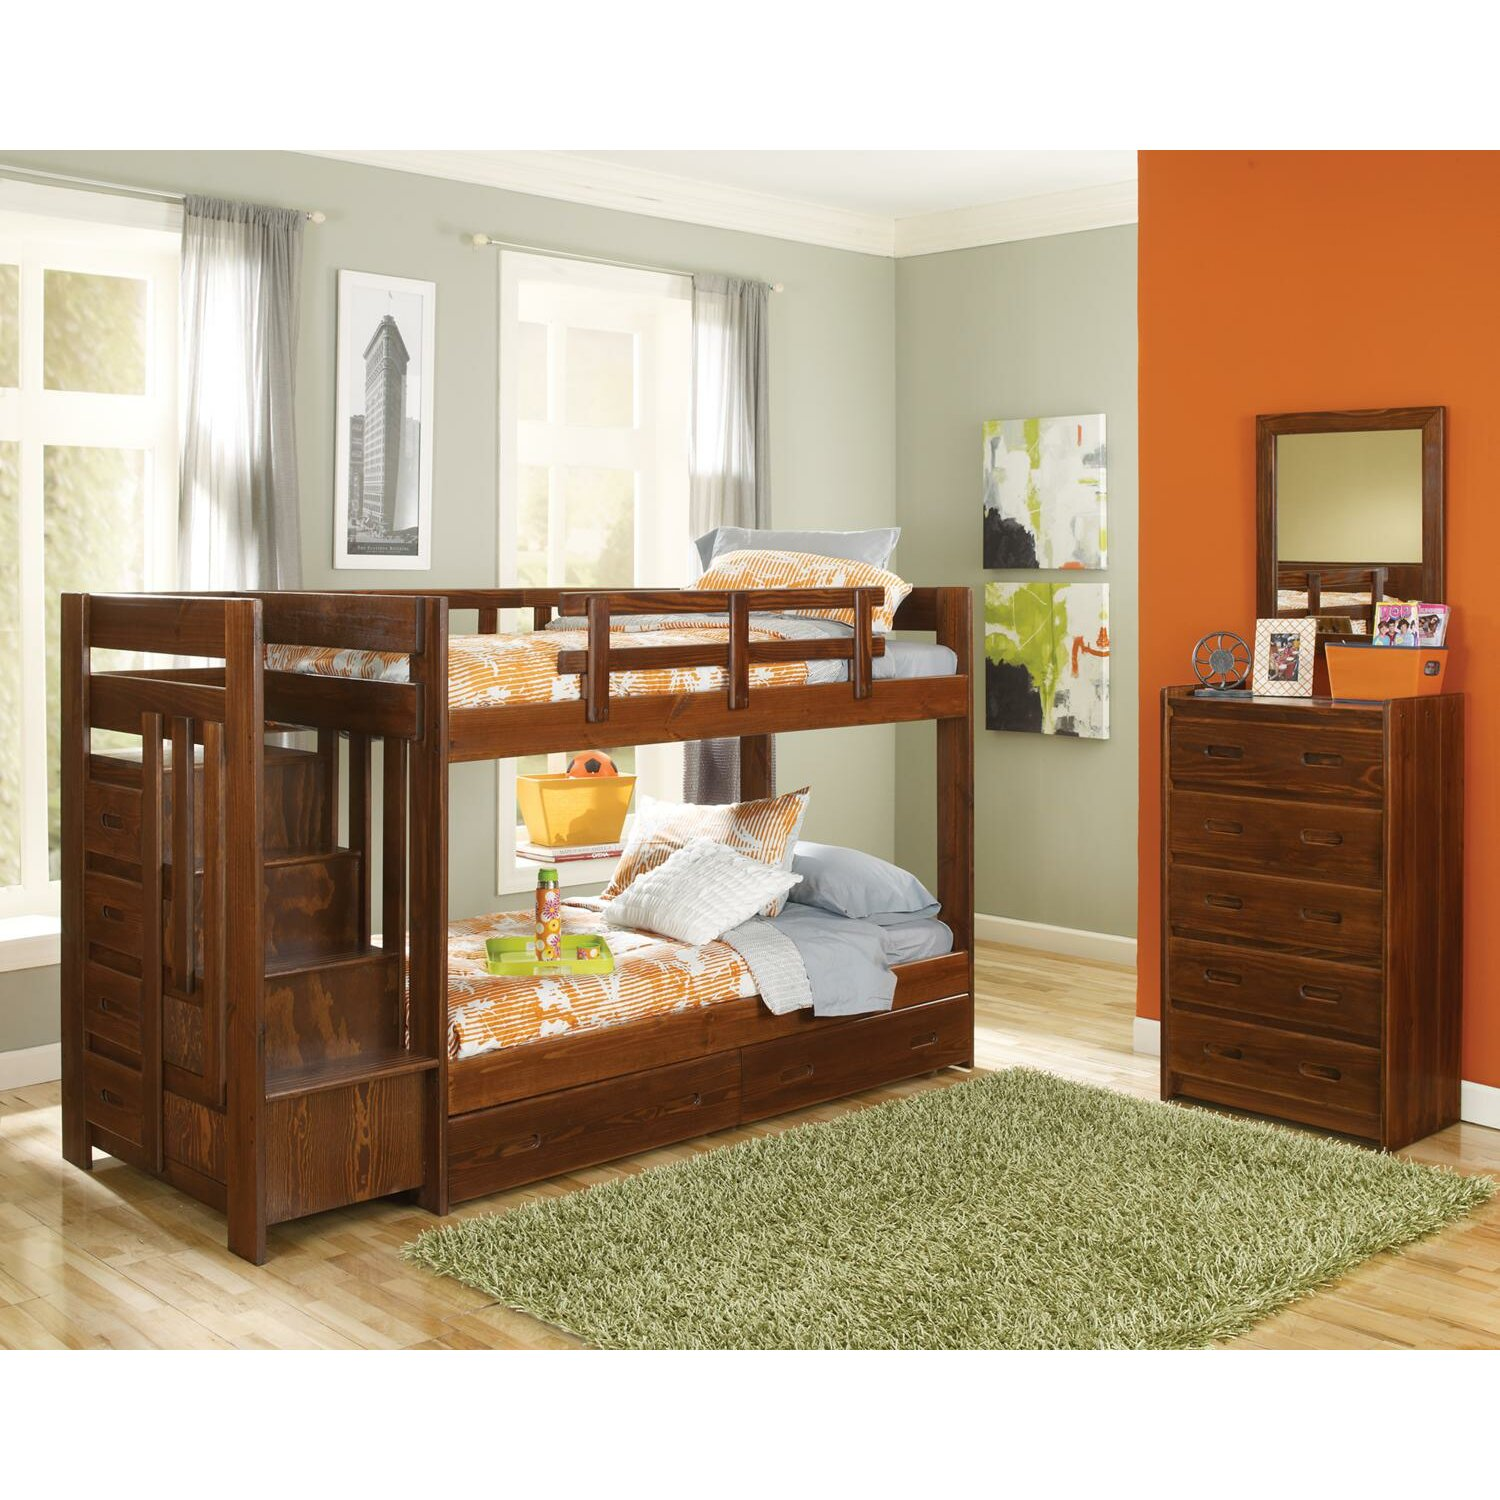 Bed Over Stair Box With Storage And Stairs: Chelsea Home Twin Customizable Bedroom Set & Reviews